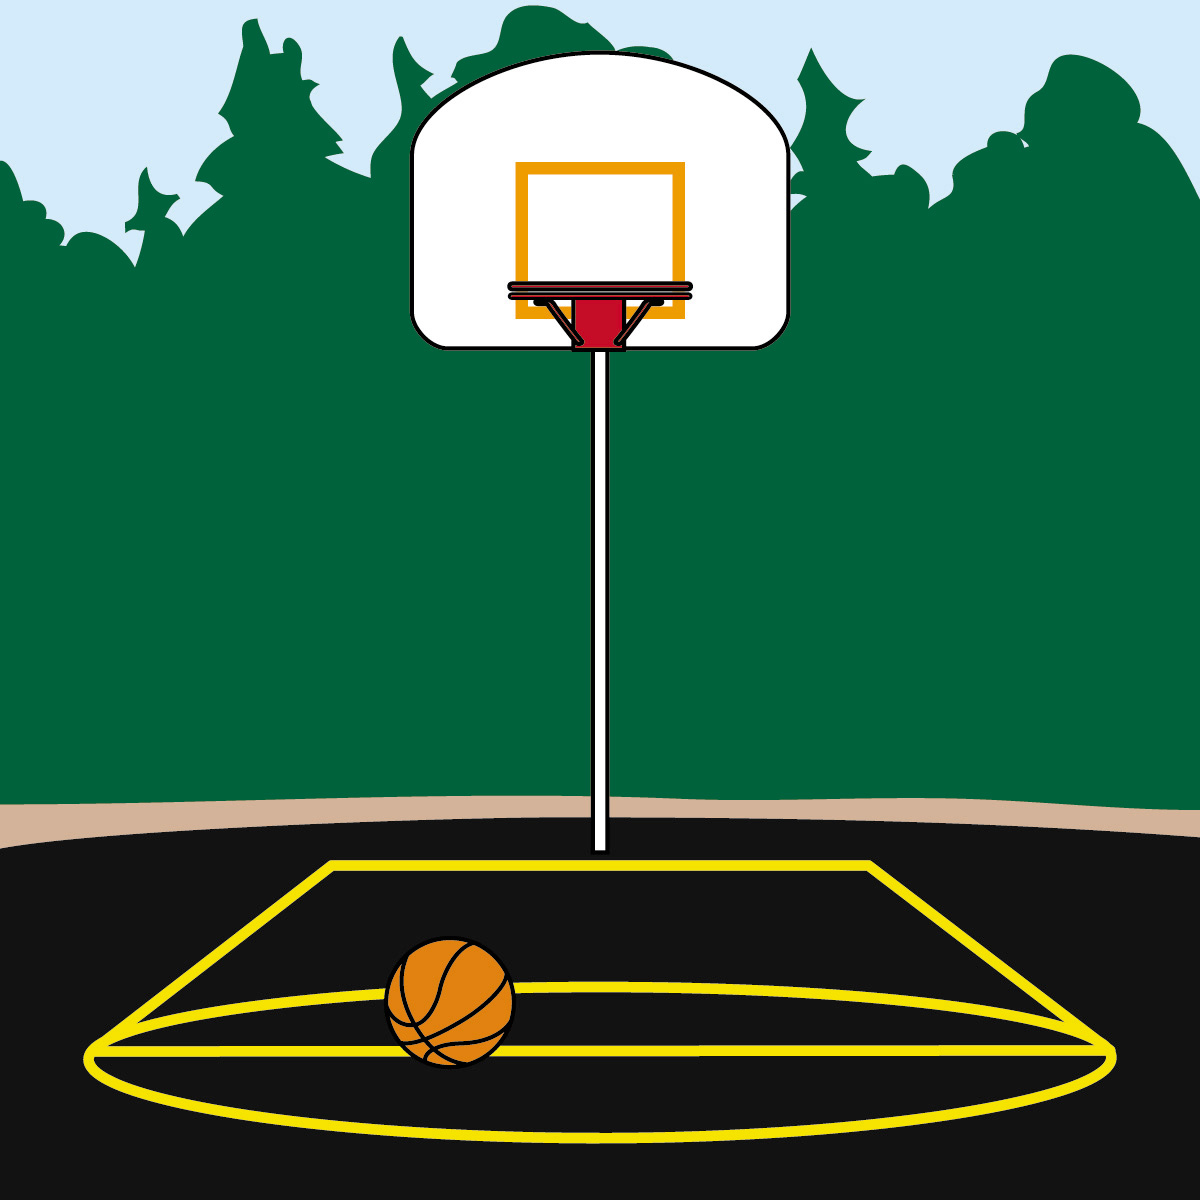 Cartoon basketball court clipart image stock Basketball Court Clipart Group with 51+ items image stock